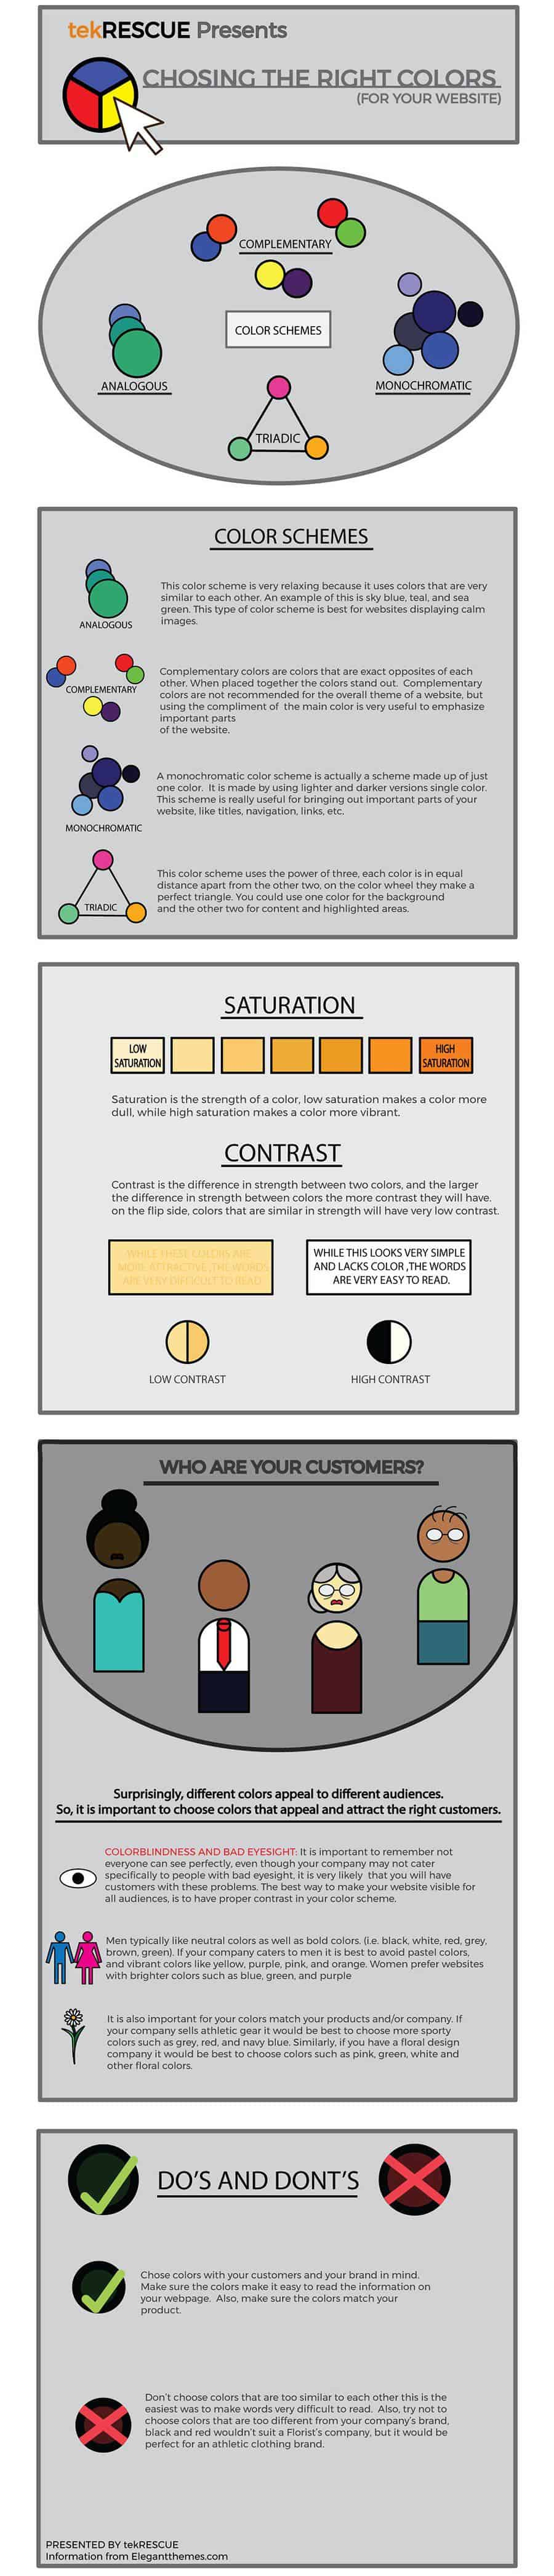 Infographic: Choosing the Right Colors for Your Website